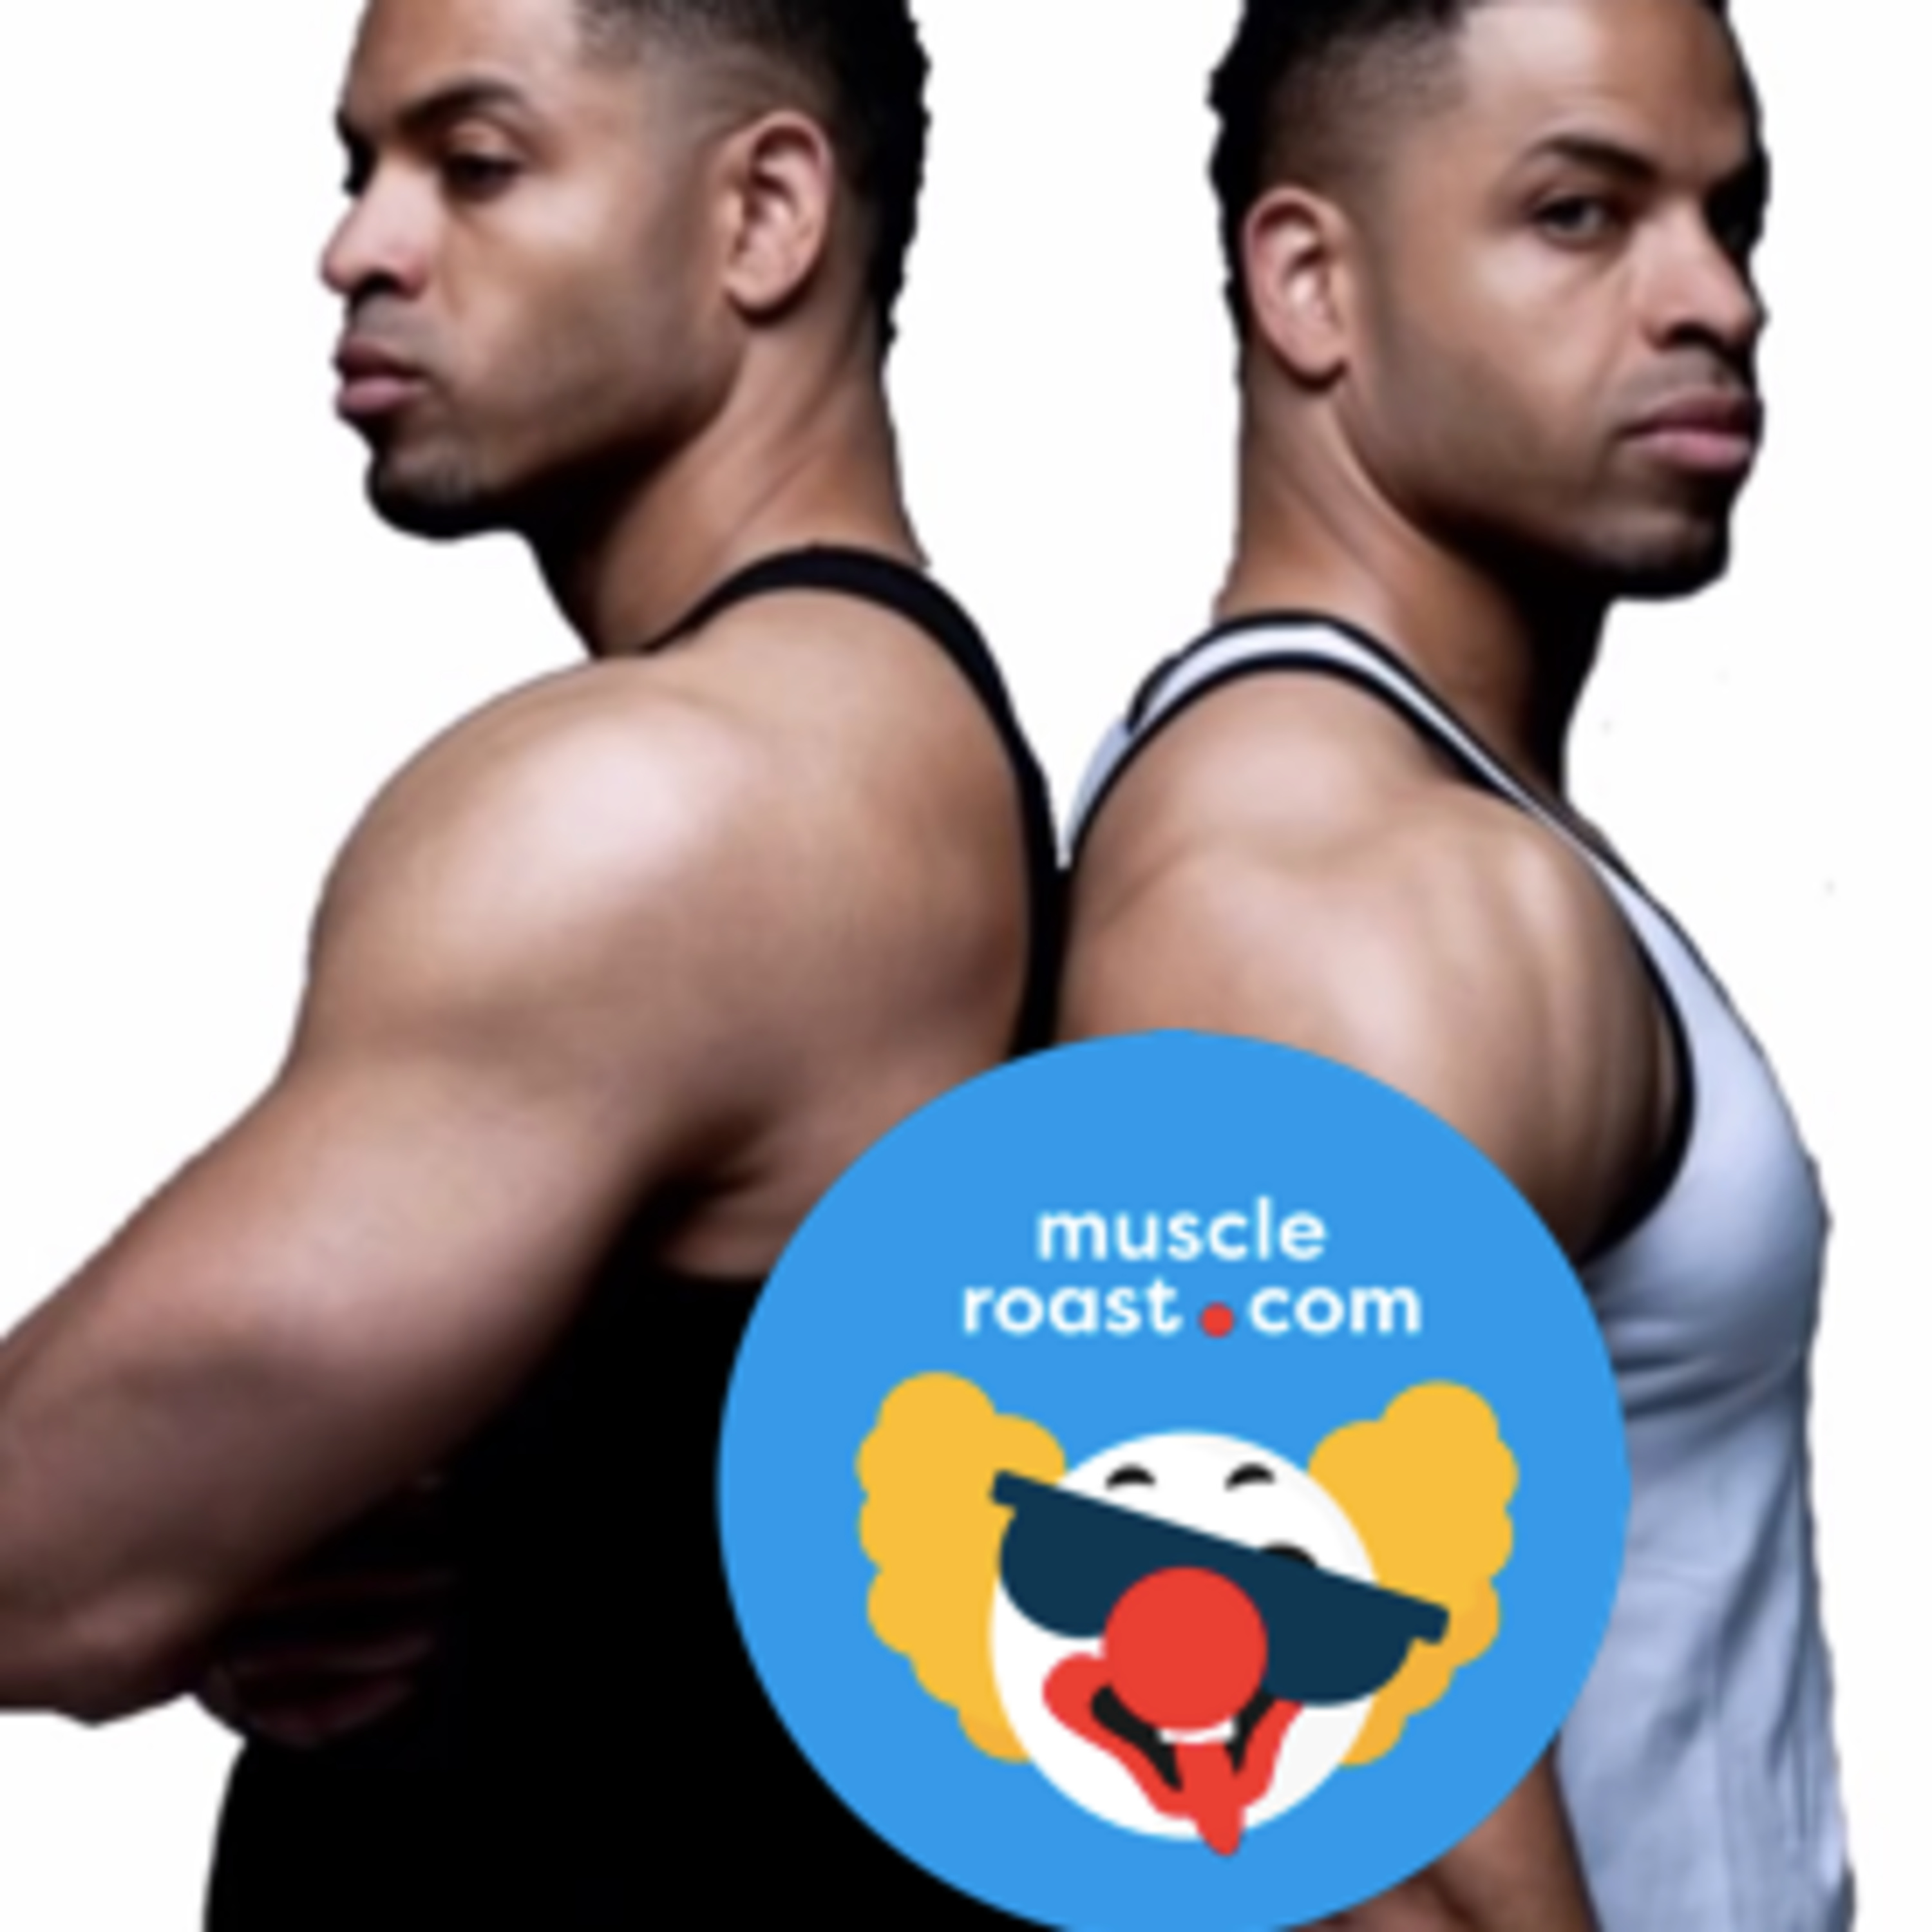 Hodgetwins Are A MILLON DOLLAR Youtube MYSTERY!